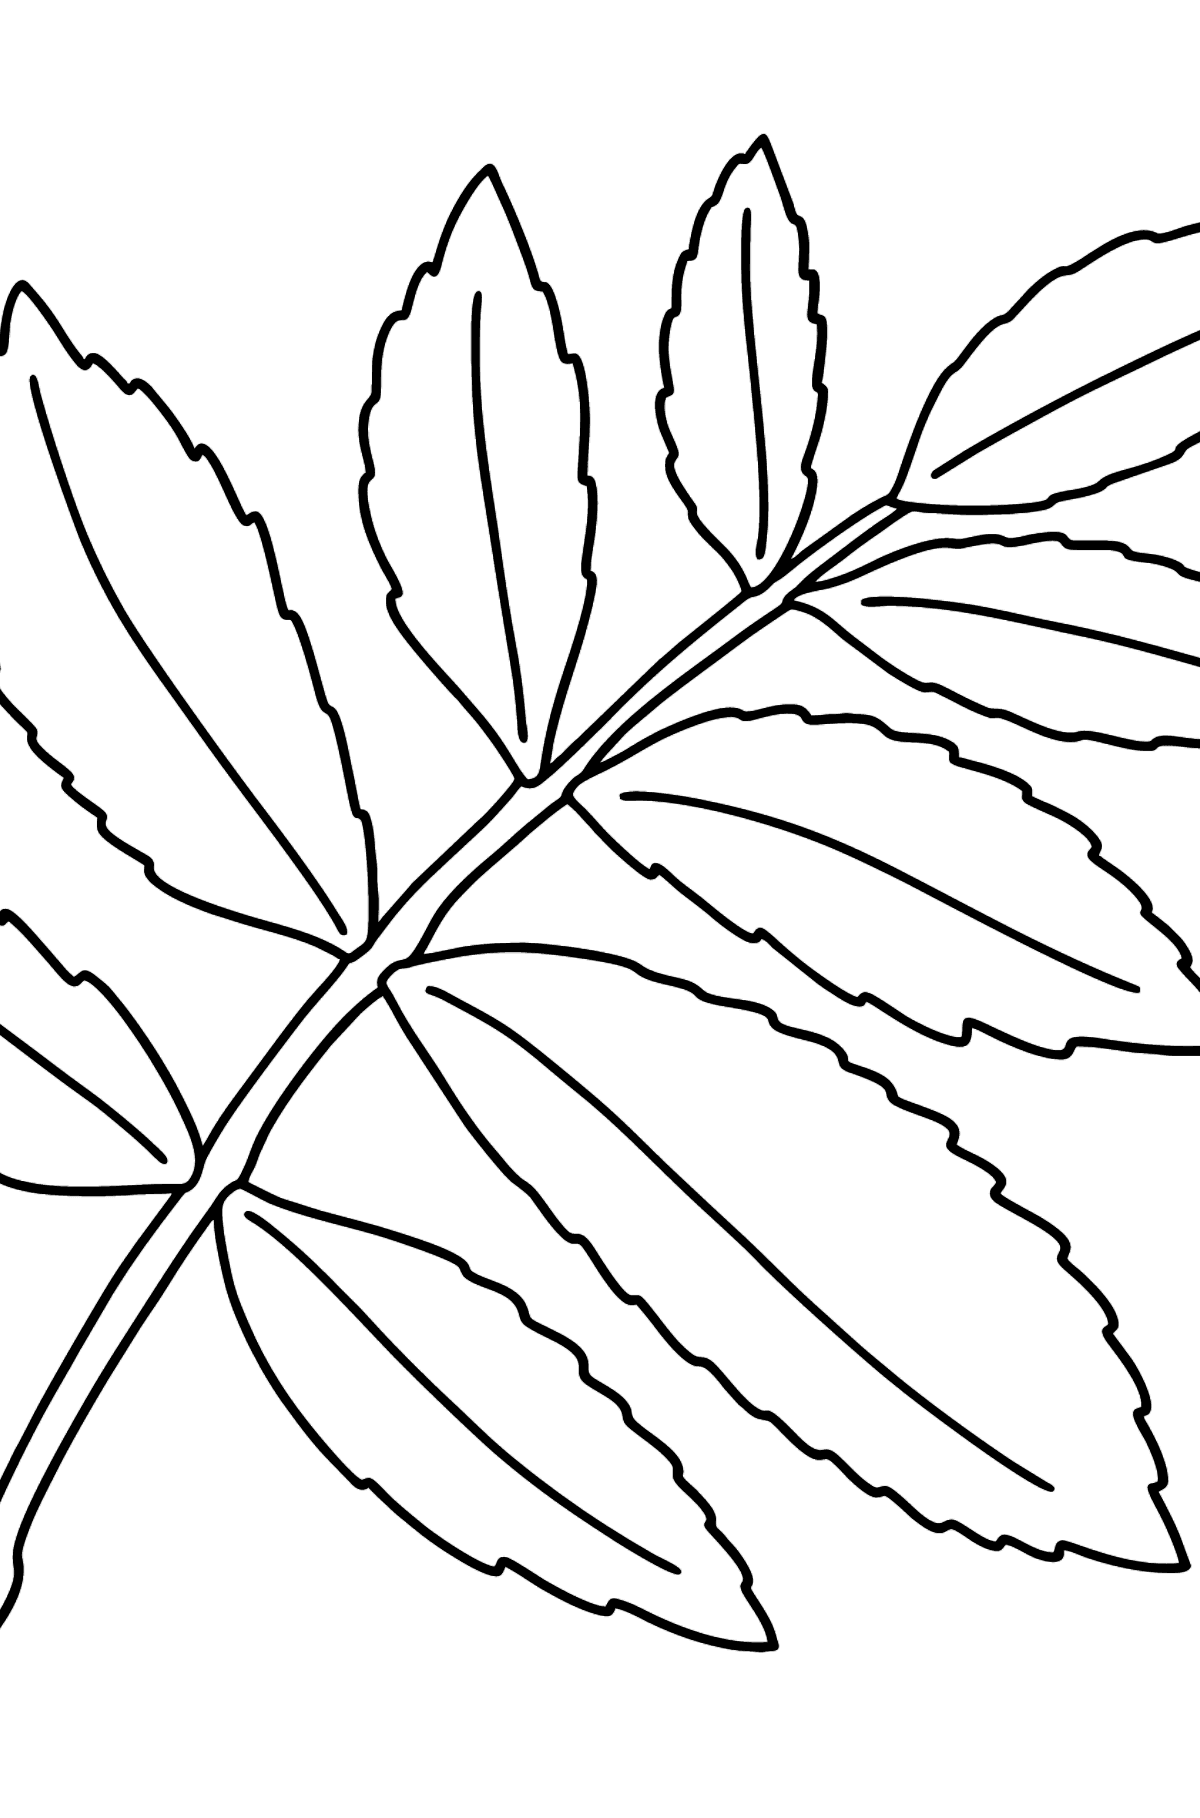 Sumac Tree Leaf coloring page - Coloring Pages for Kids